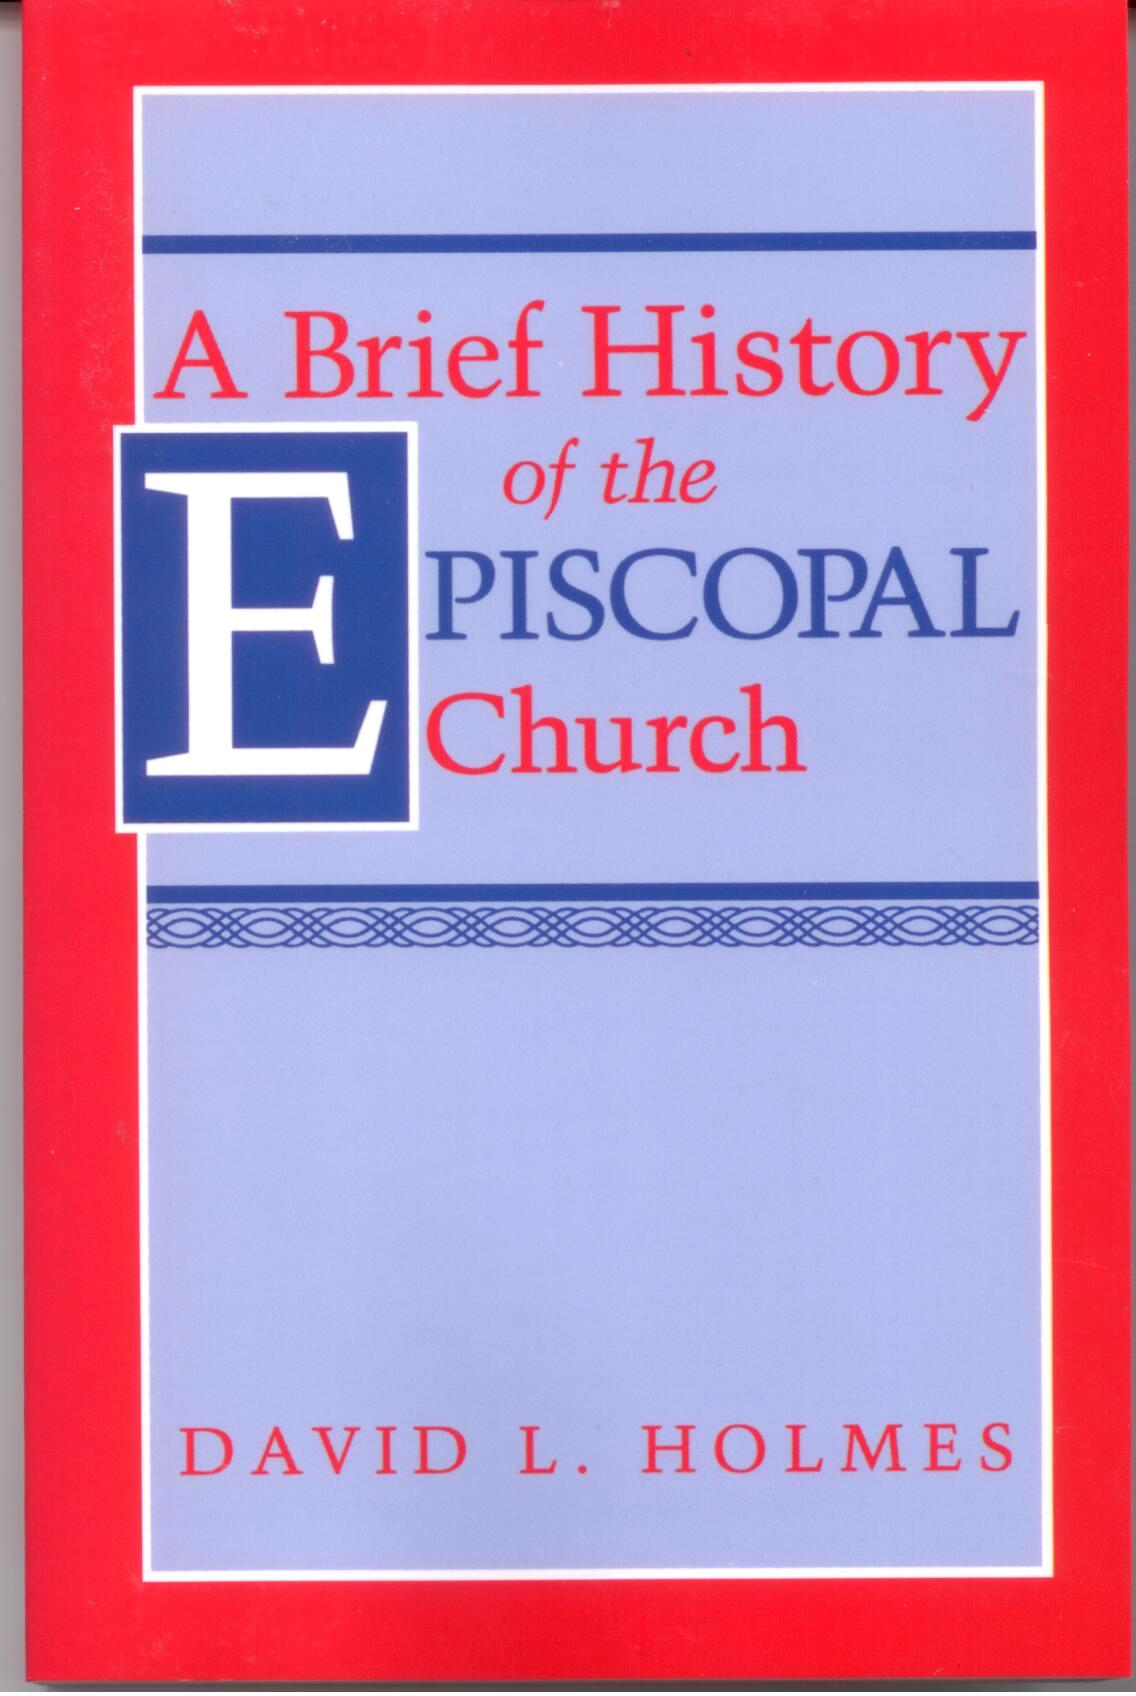 A Brief History of the Episcopal Church by David L.Holmes 108-9781563380600